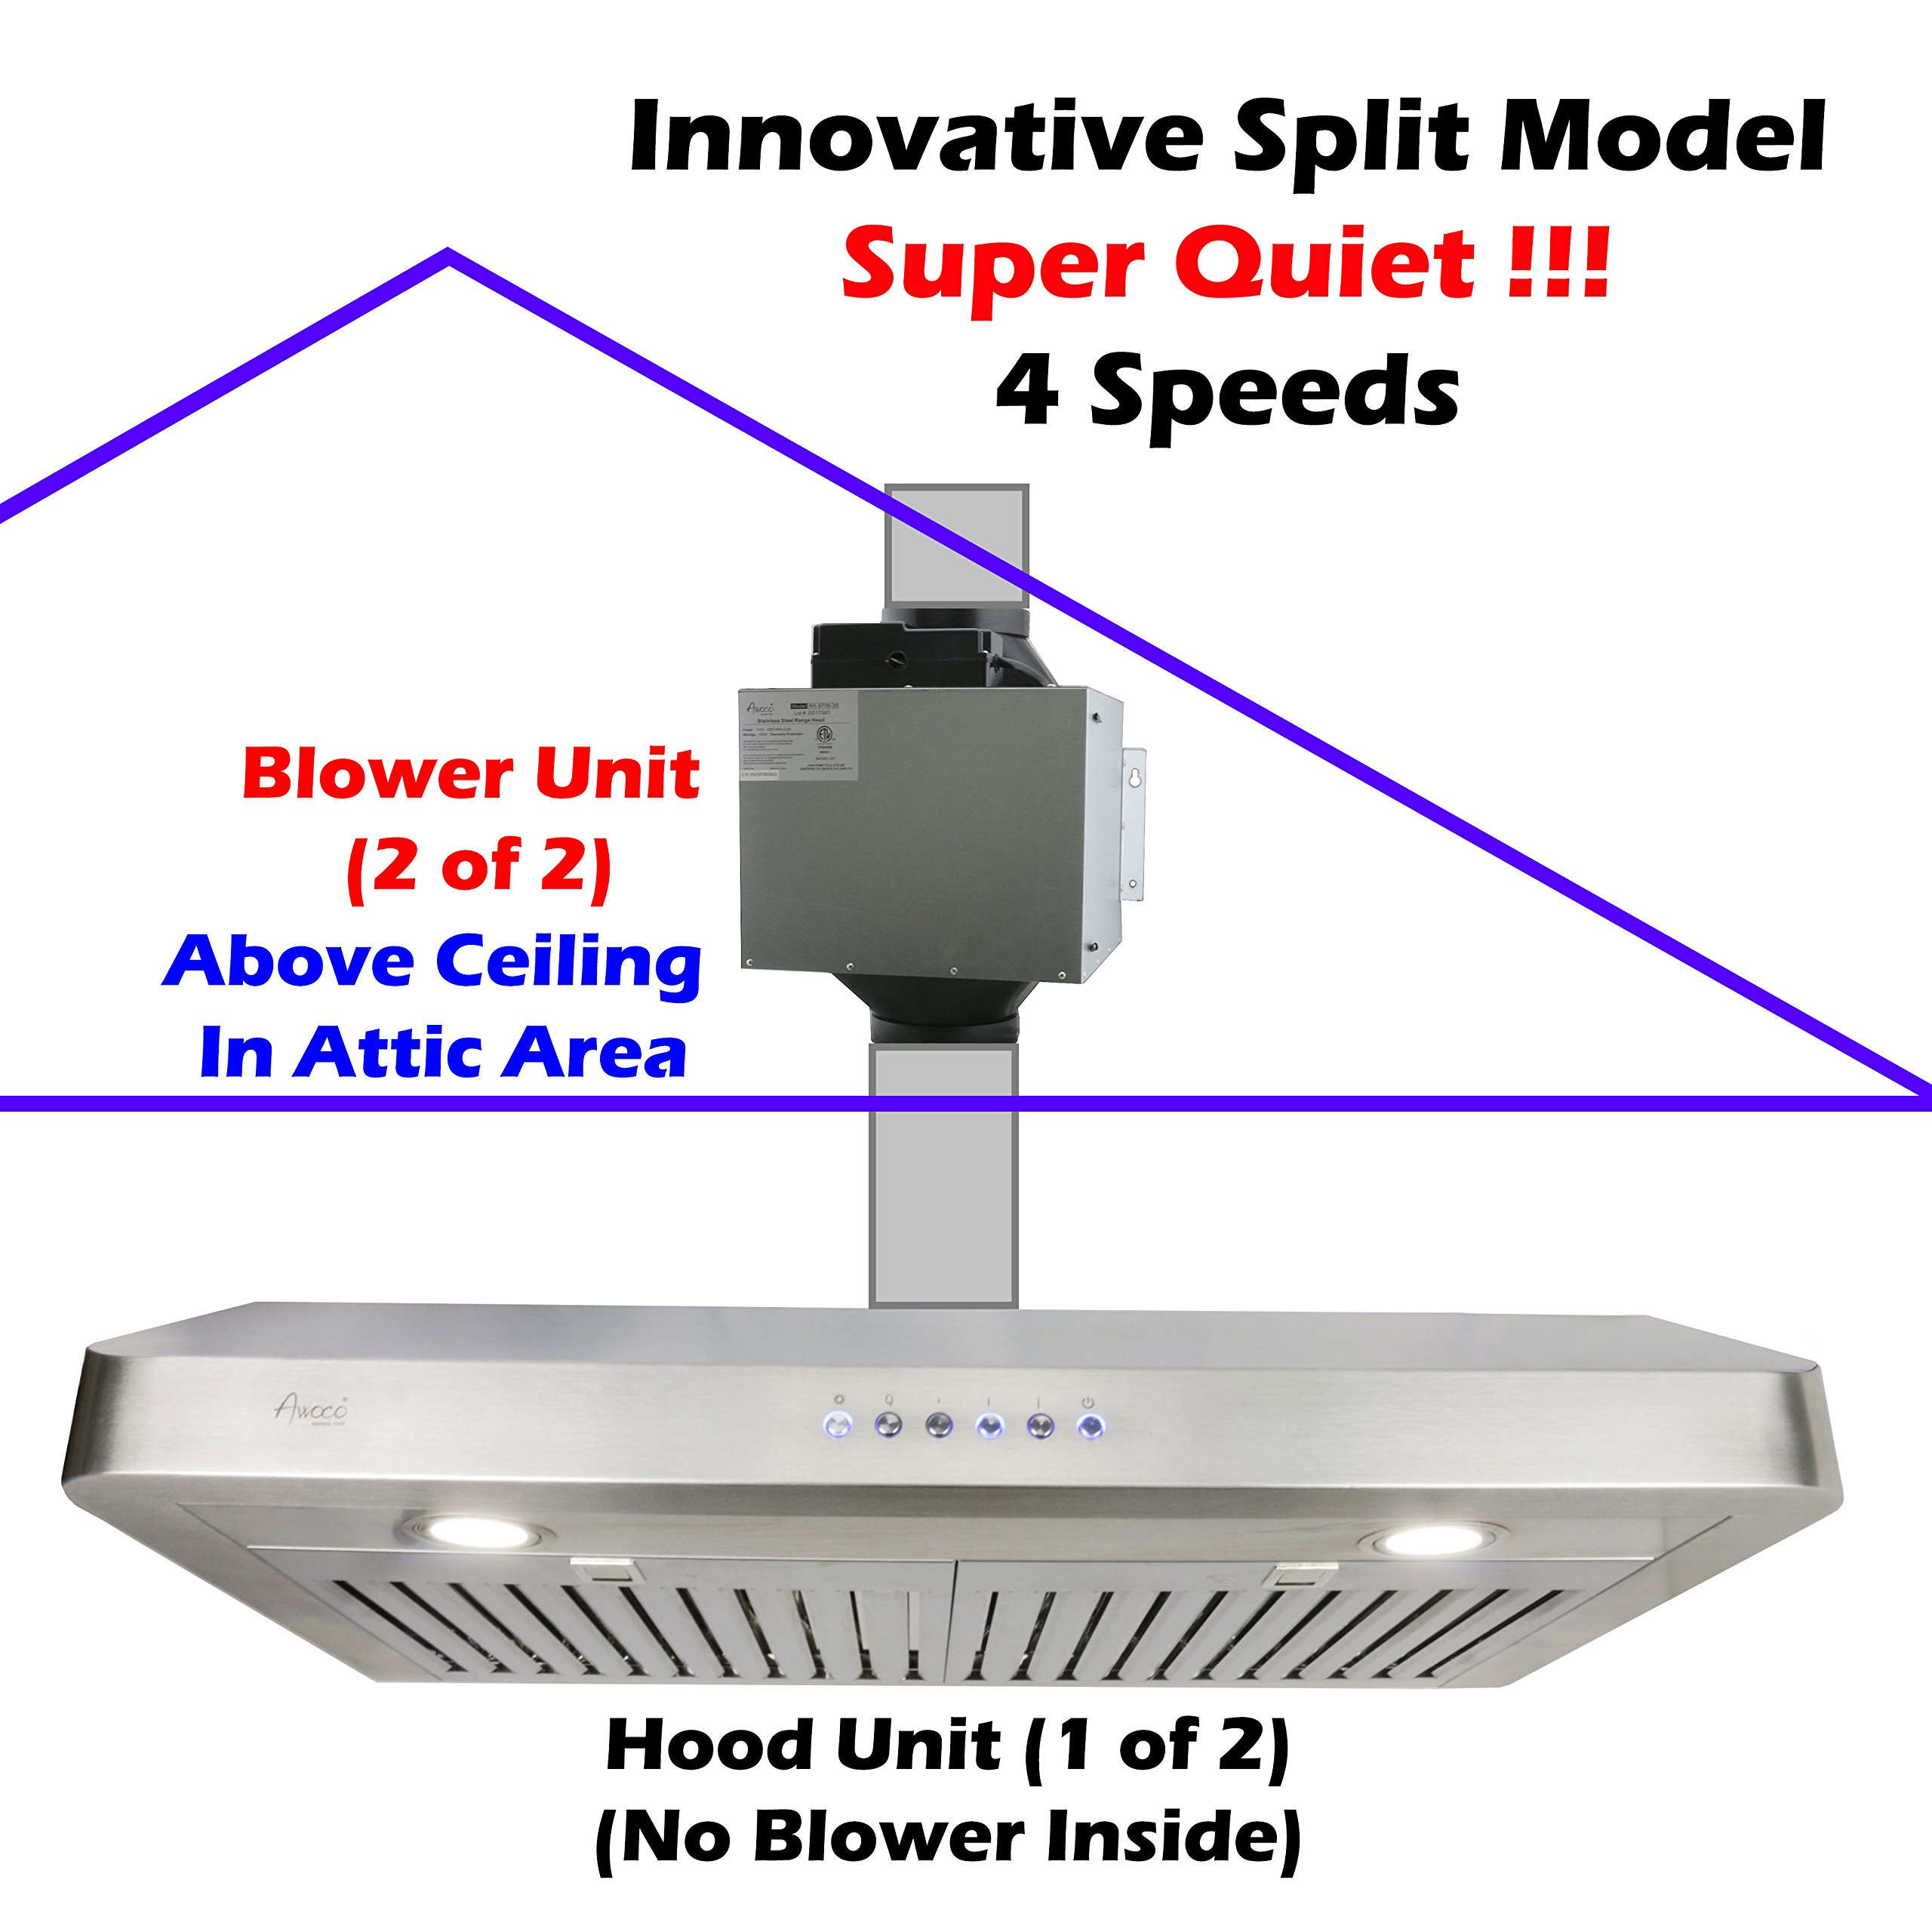 Awoco Split Super Quiet Range Hood Blower Unit Installed in Attic Work with 30'' or 36'' Hood Unit, 4 Speeds 900CFM, 6'' Round Vent In and Out (Blower Unit Only)